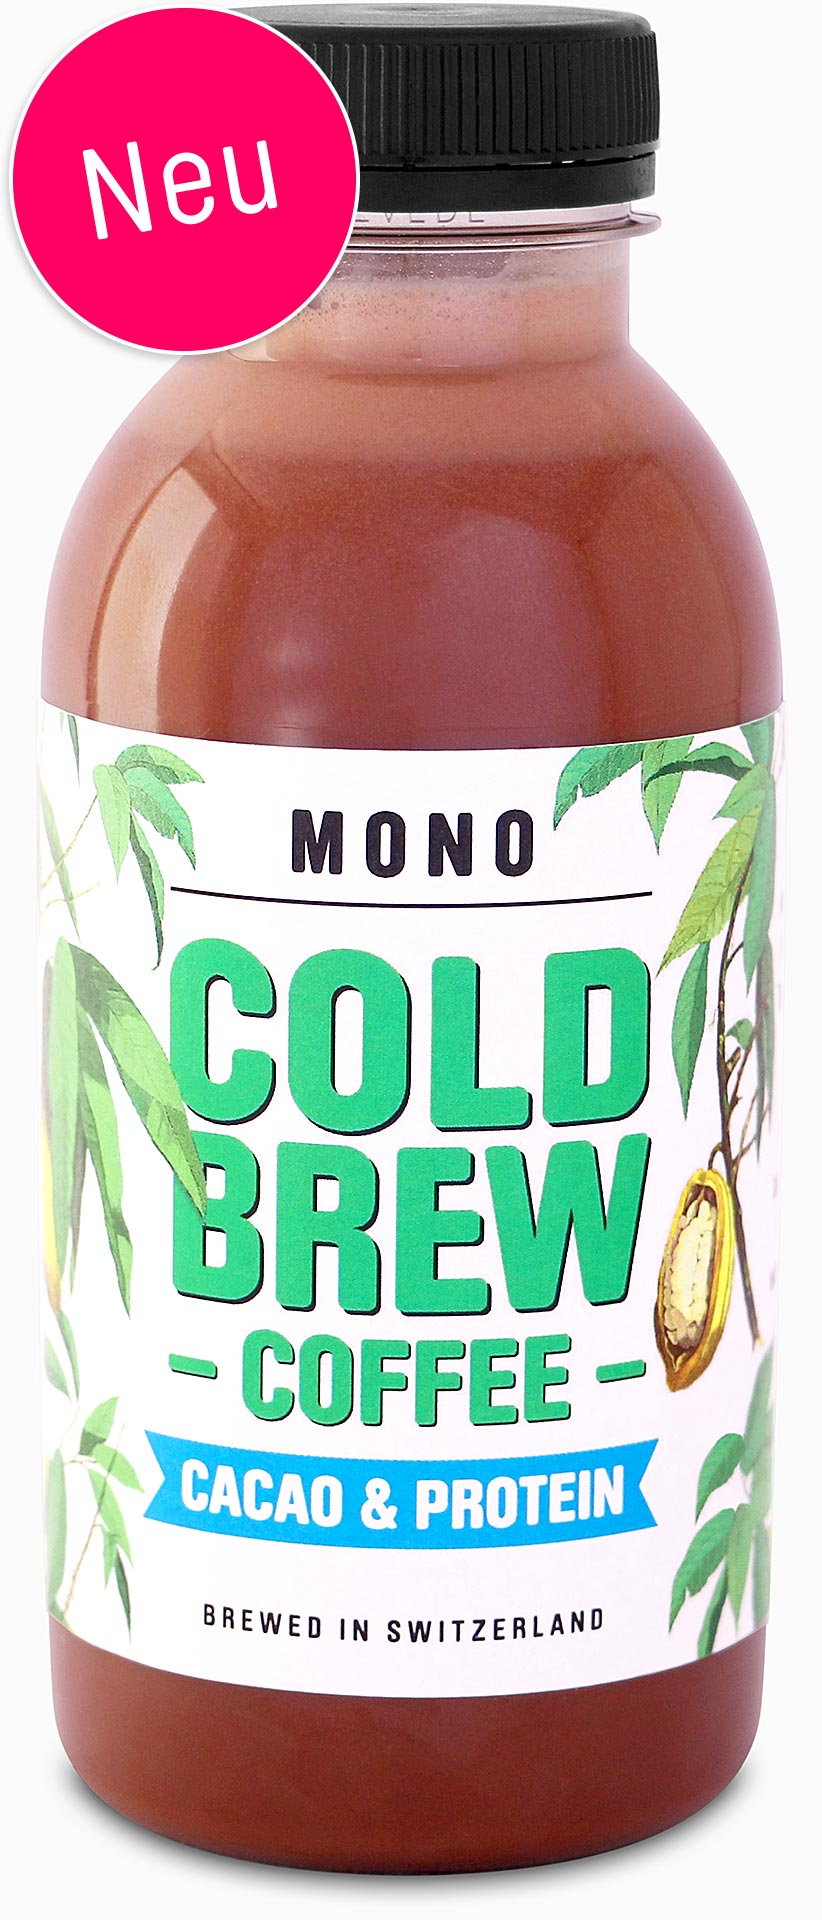 MONO Cold Brew Coffee Cacao & Protein. Brewed in Switzerland, 280ml.